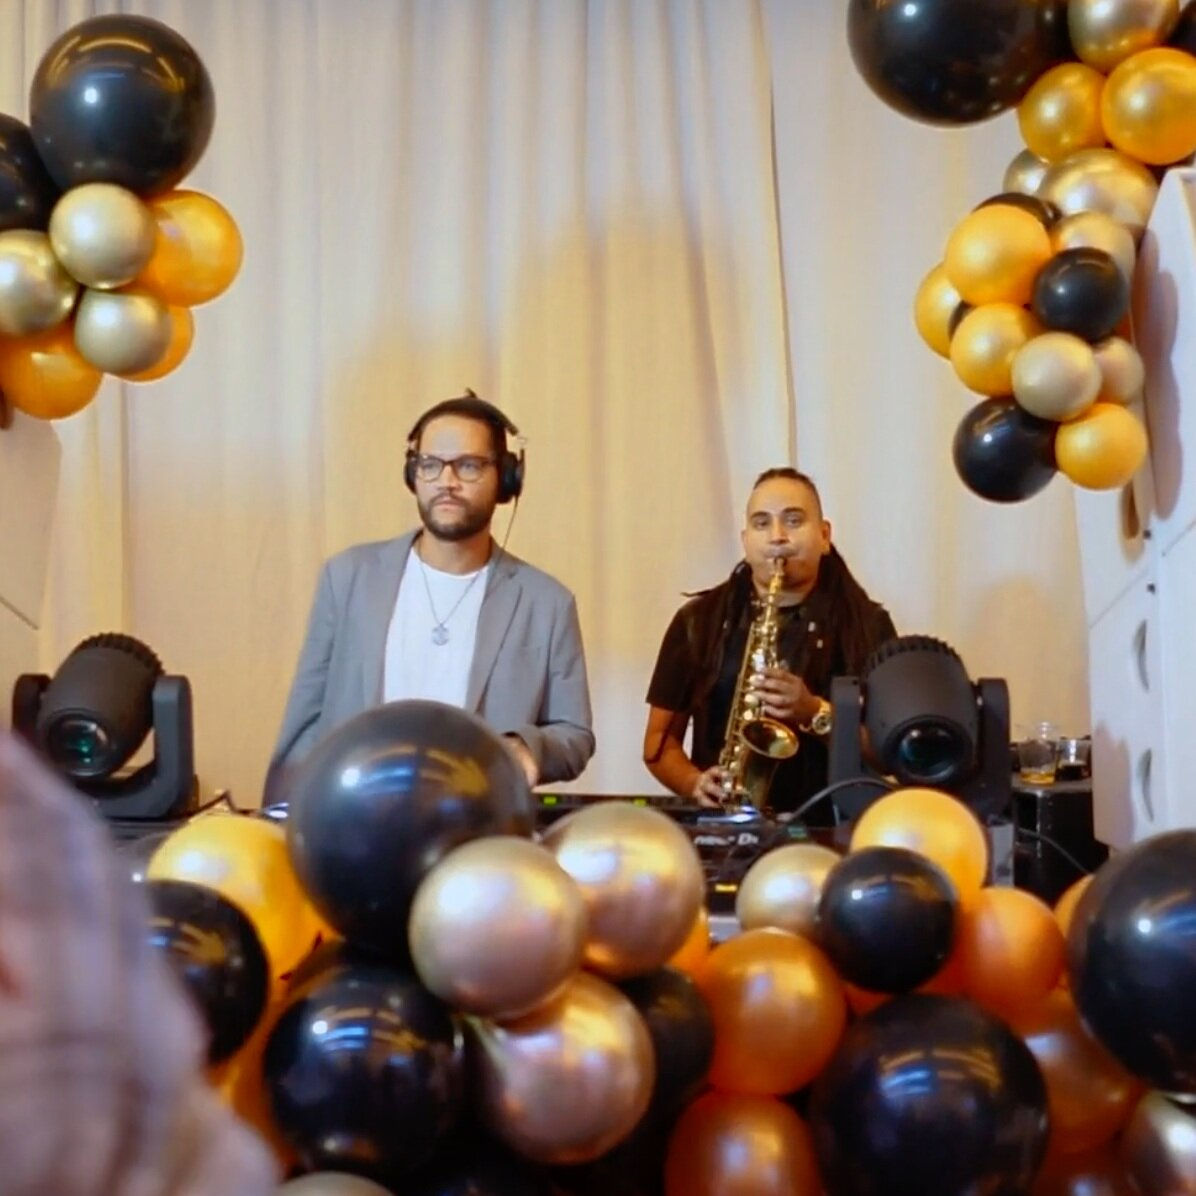 DJ Band Fusion - From cocktail hour to the dance party section of your event, we can cover all energy levels with our custom DJ band fusions. Whether it's just a few special tracks or a complete DJ set, add a saxophonist, violinist, vocalist or drummer to our DJ sets for incredible sound and presence!